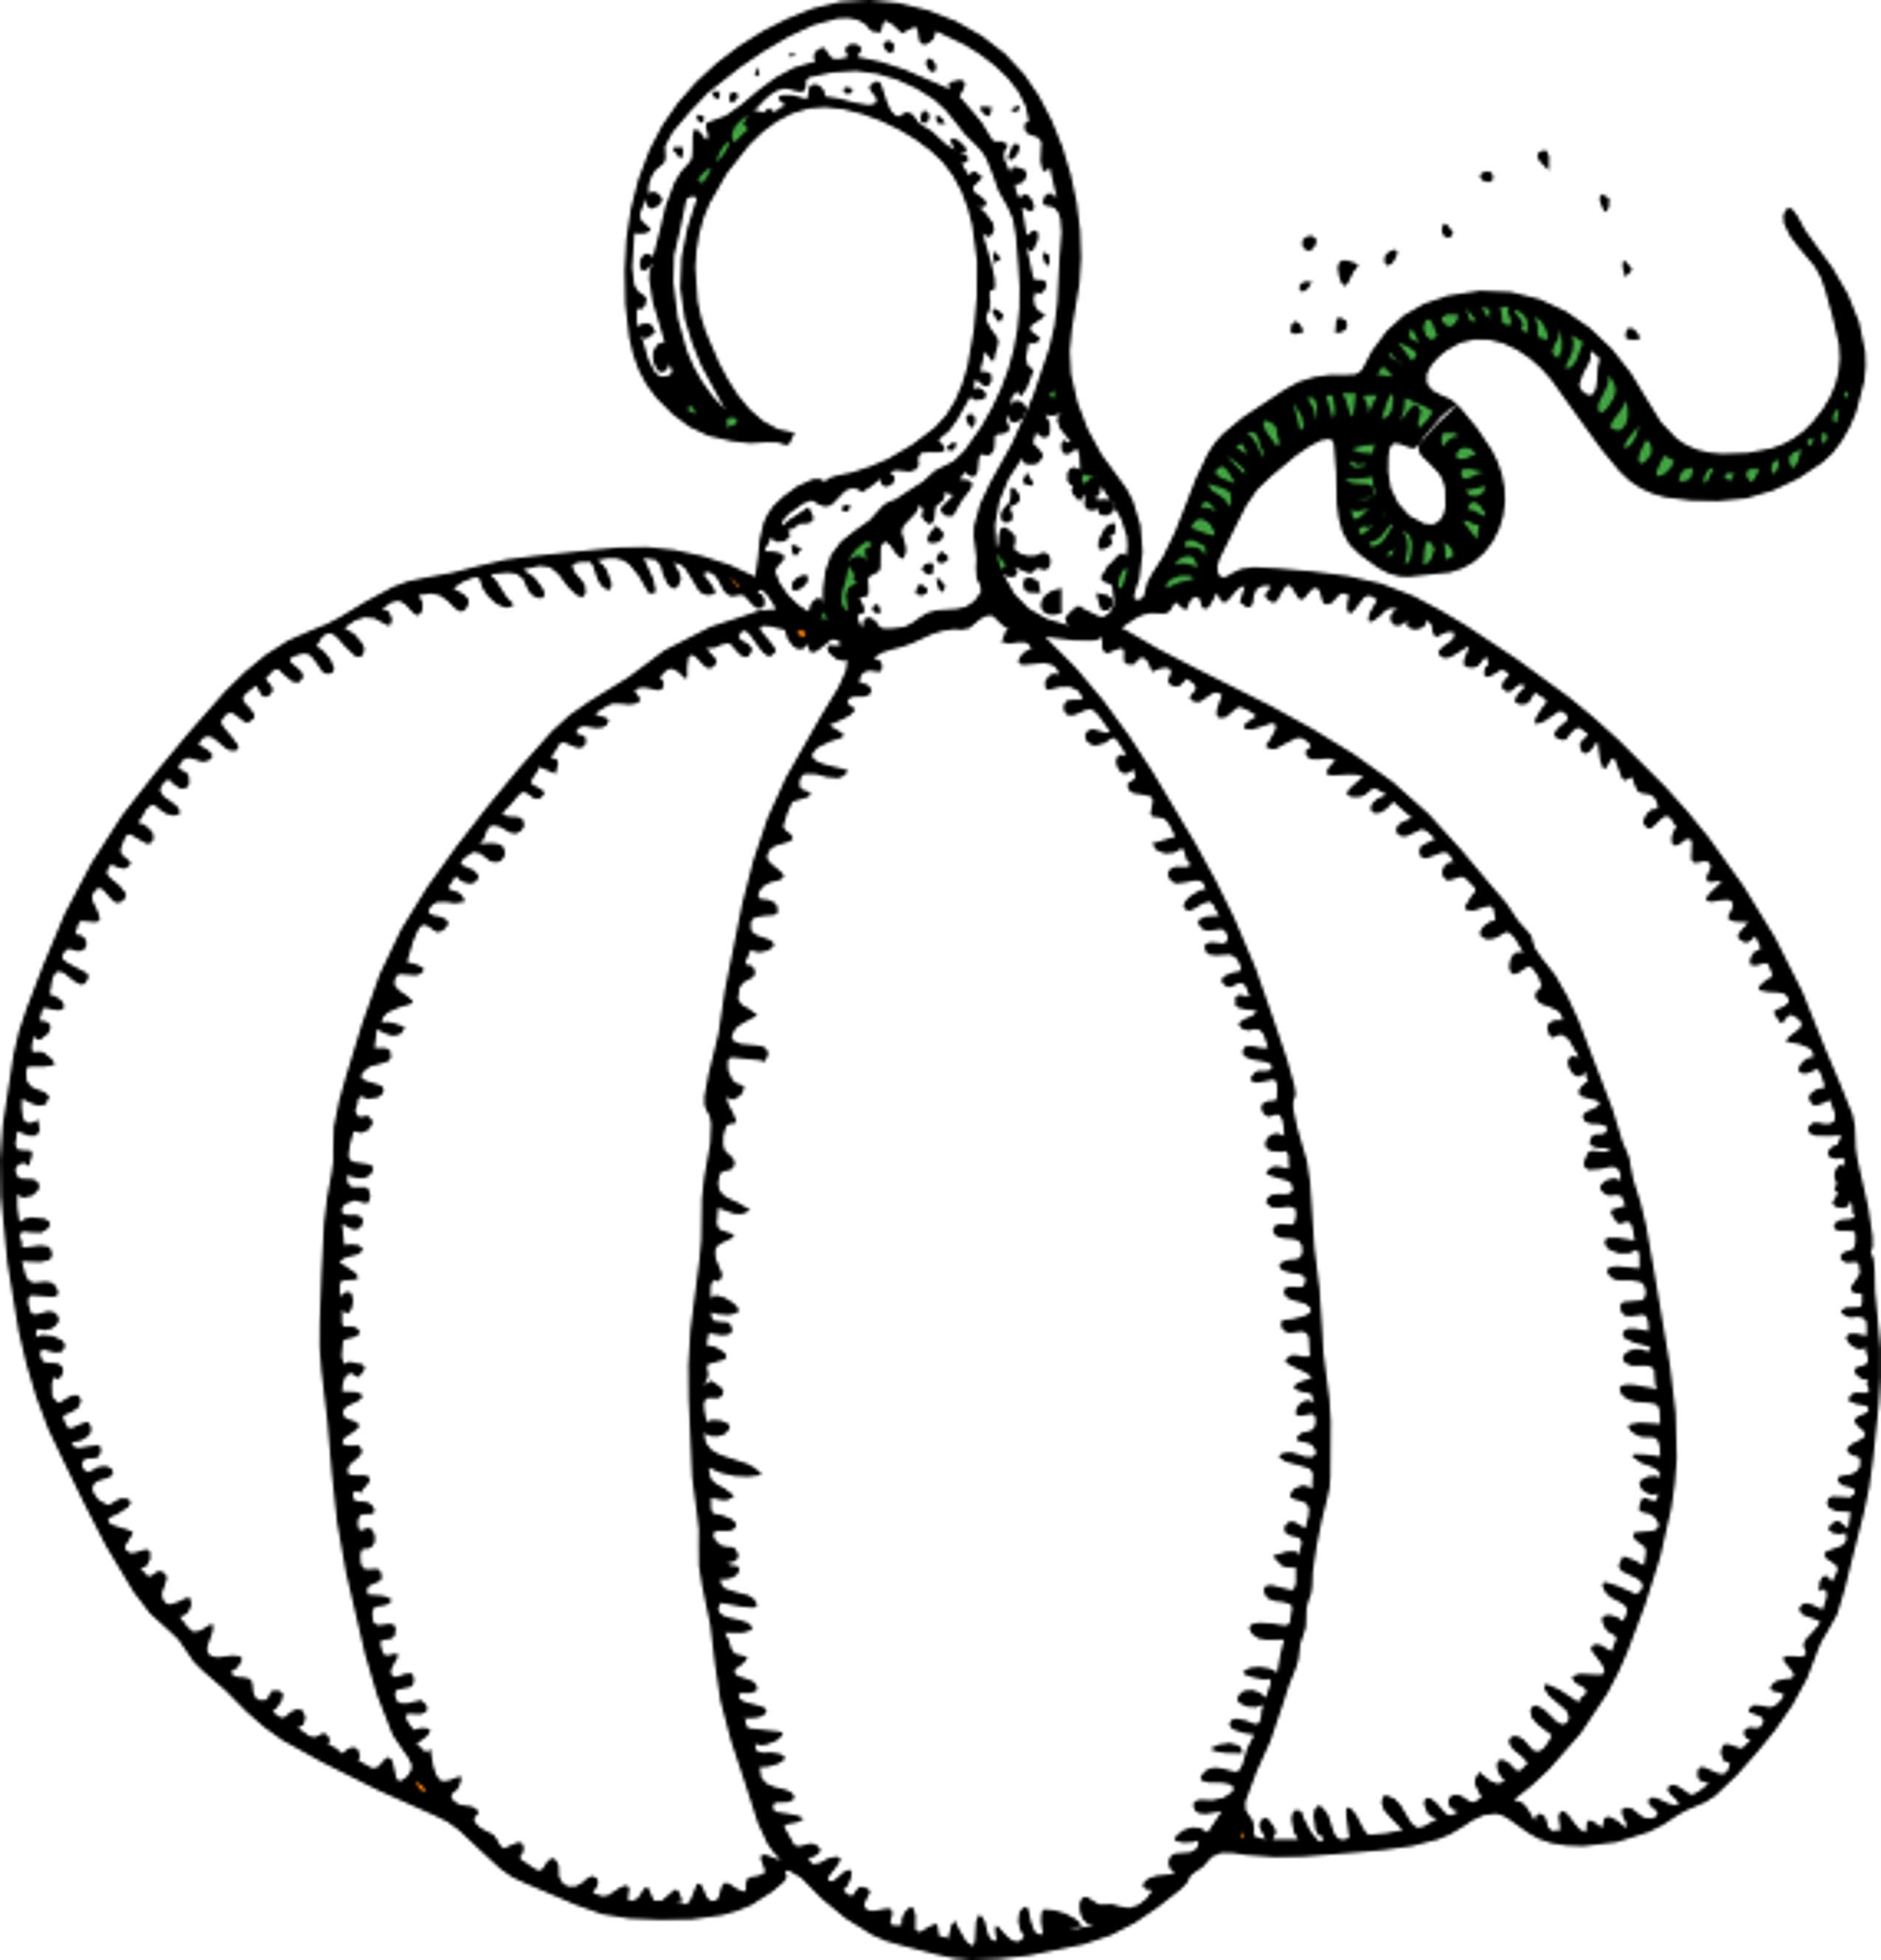 Free coloring pages for halloween and fall - Preschool Easy Fall Pumpkin Coloring Pages Printable Printable